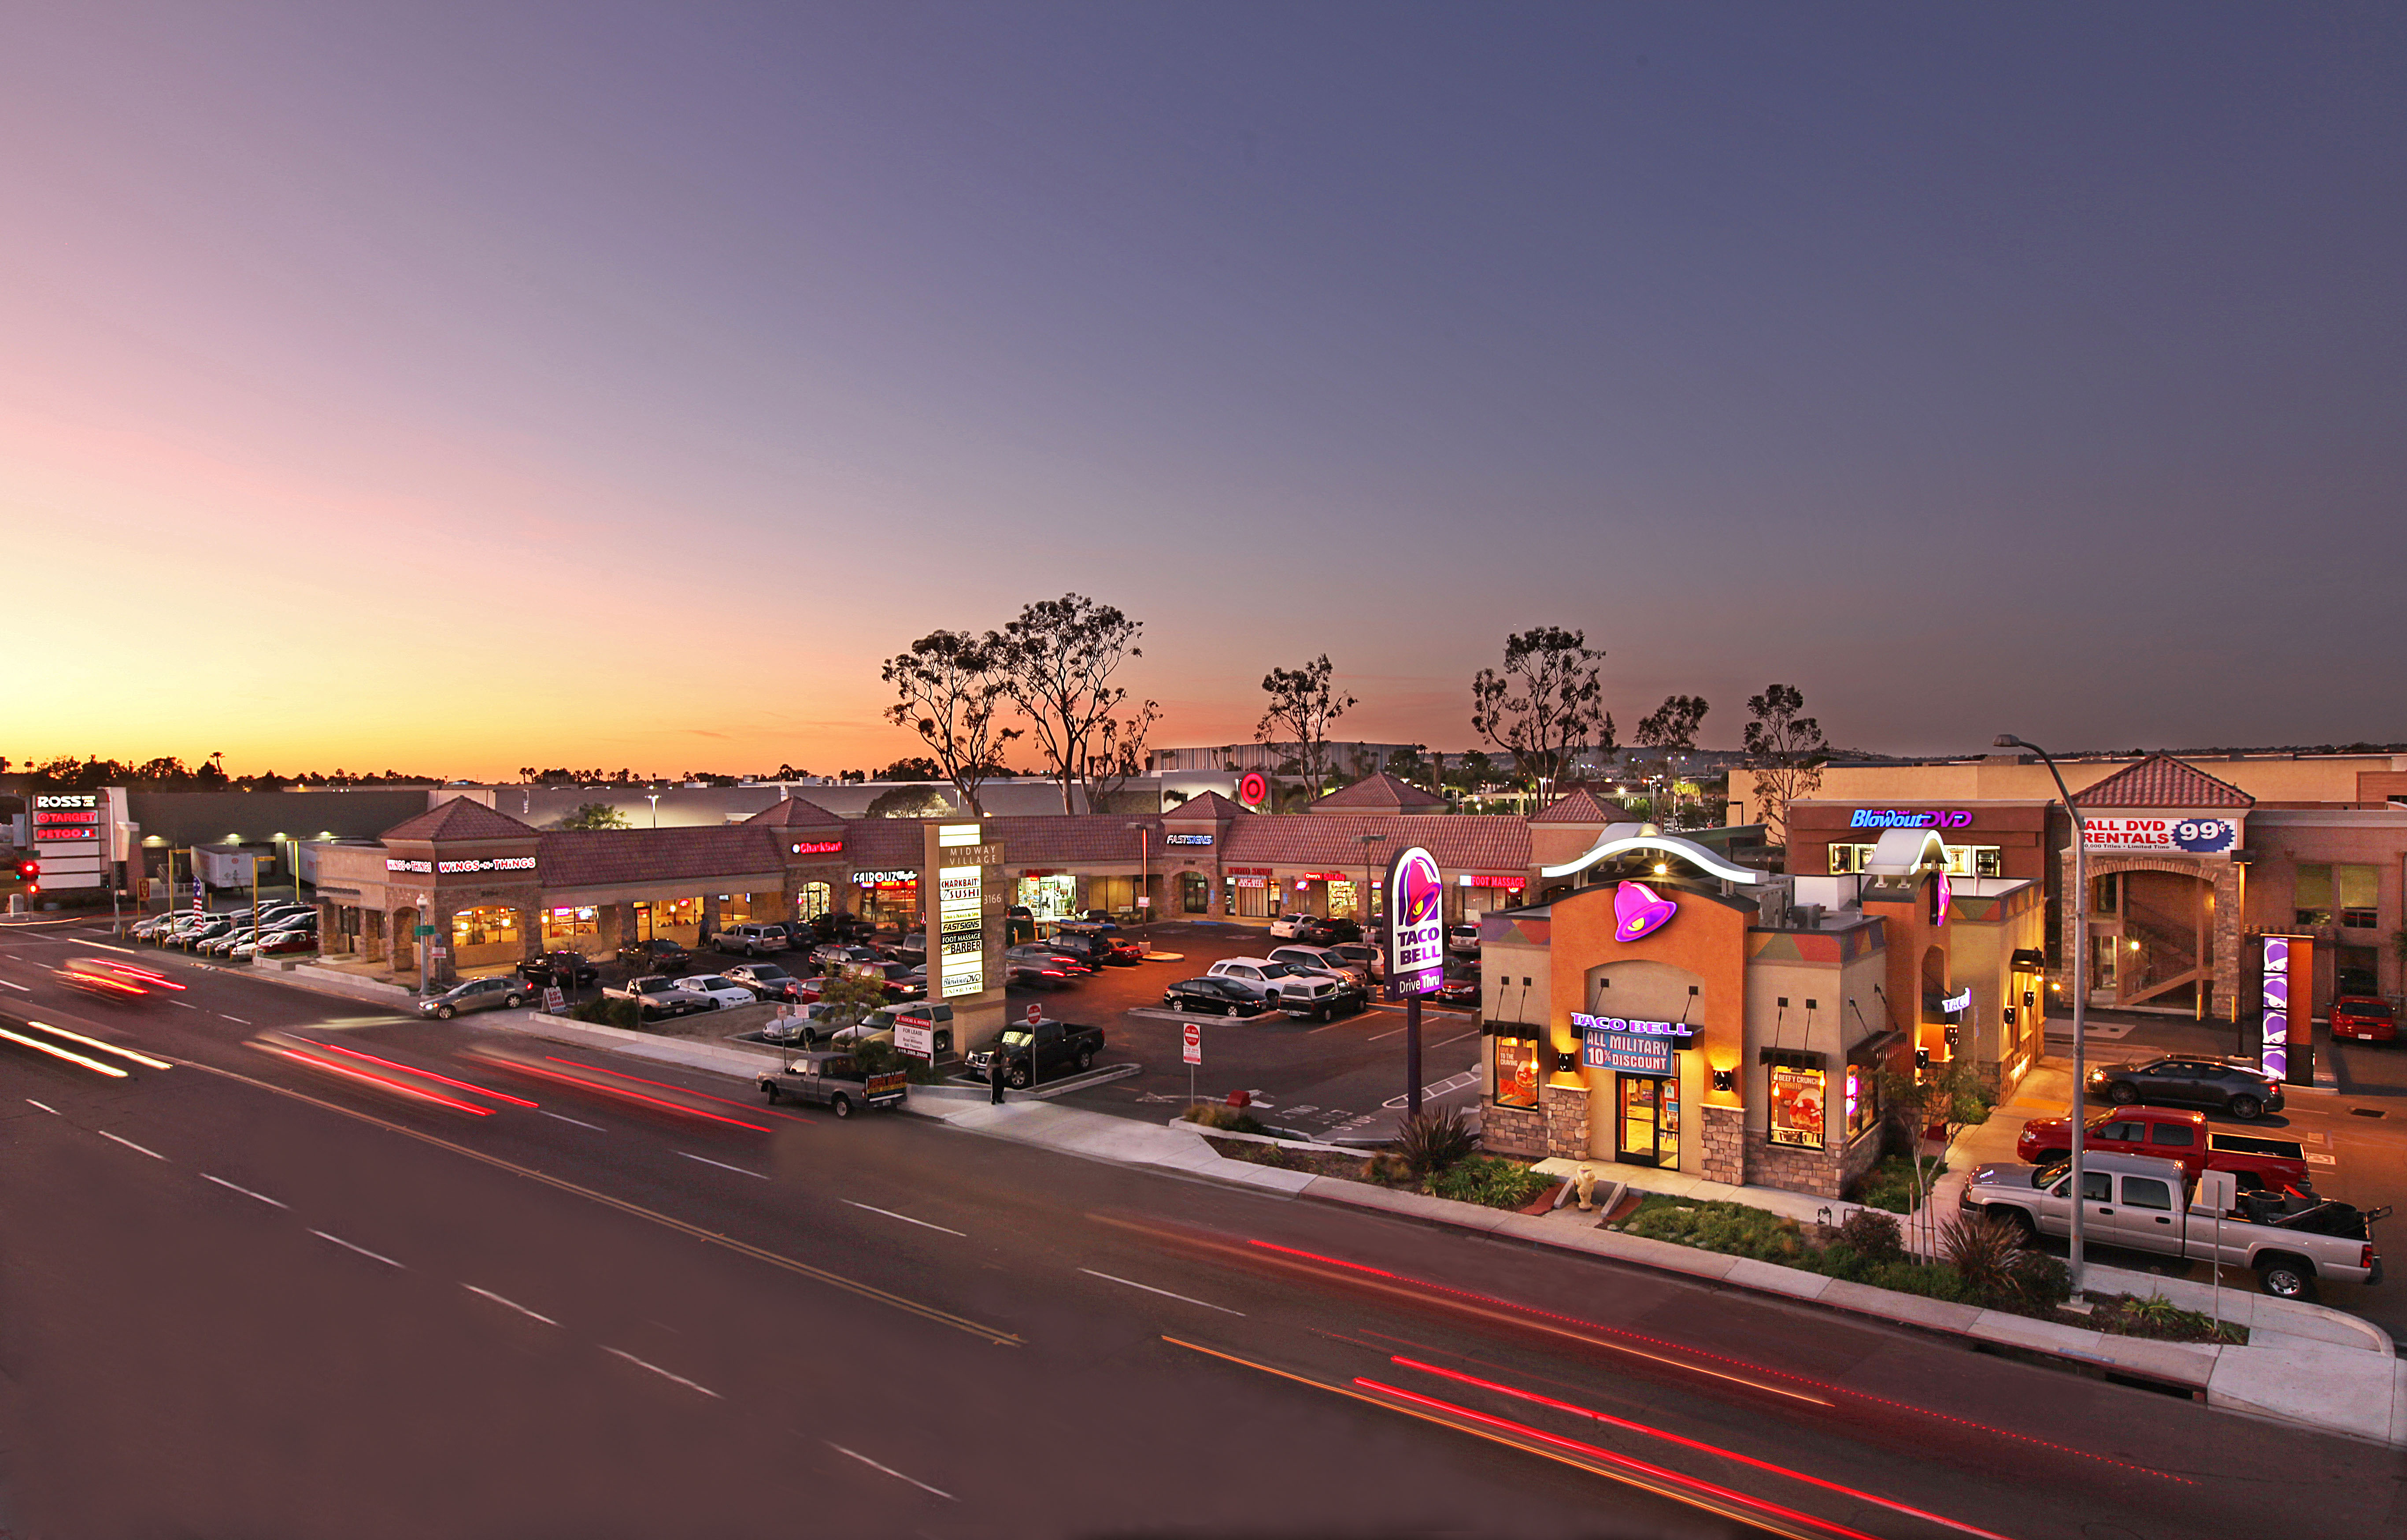 The shopping center has a total of 29,718 square feet in the heart of the Midway District trade area